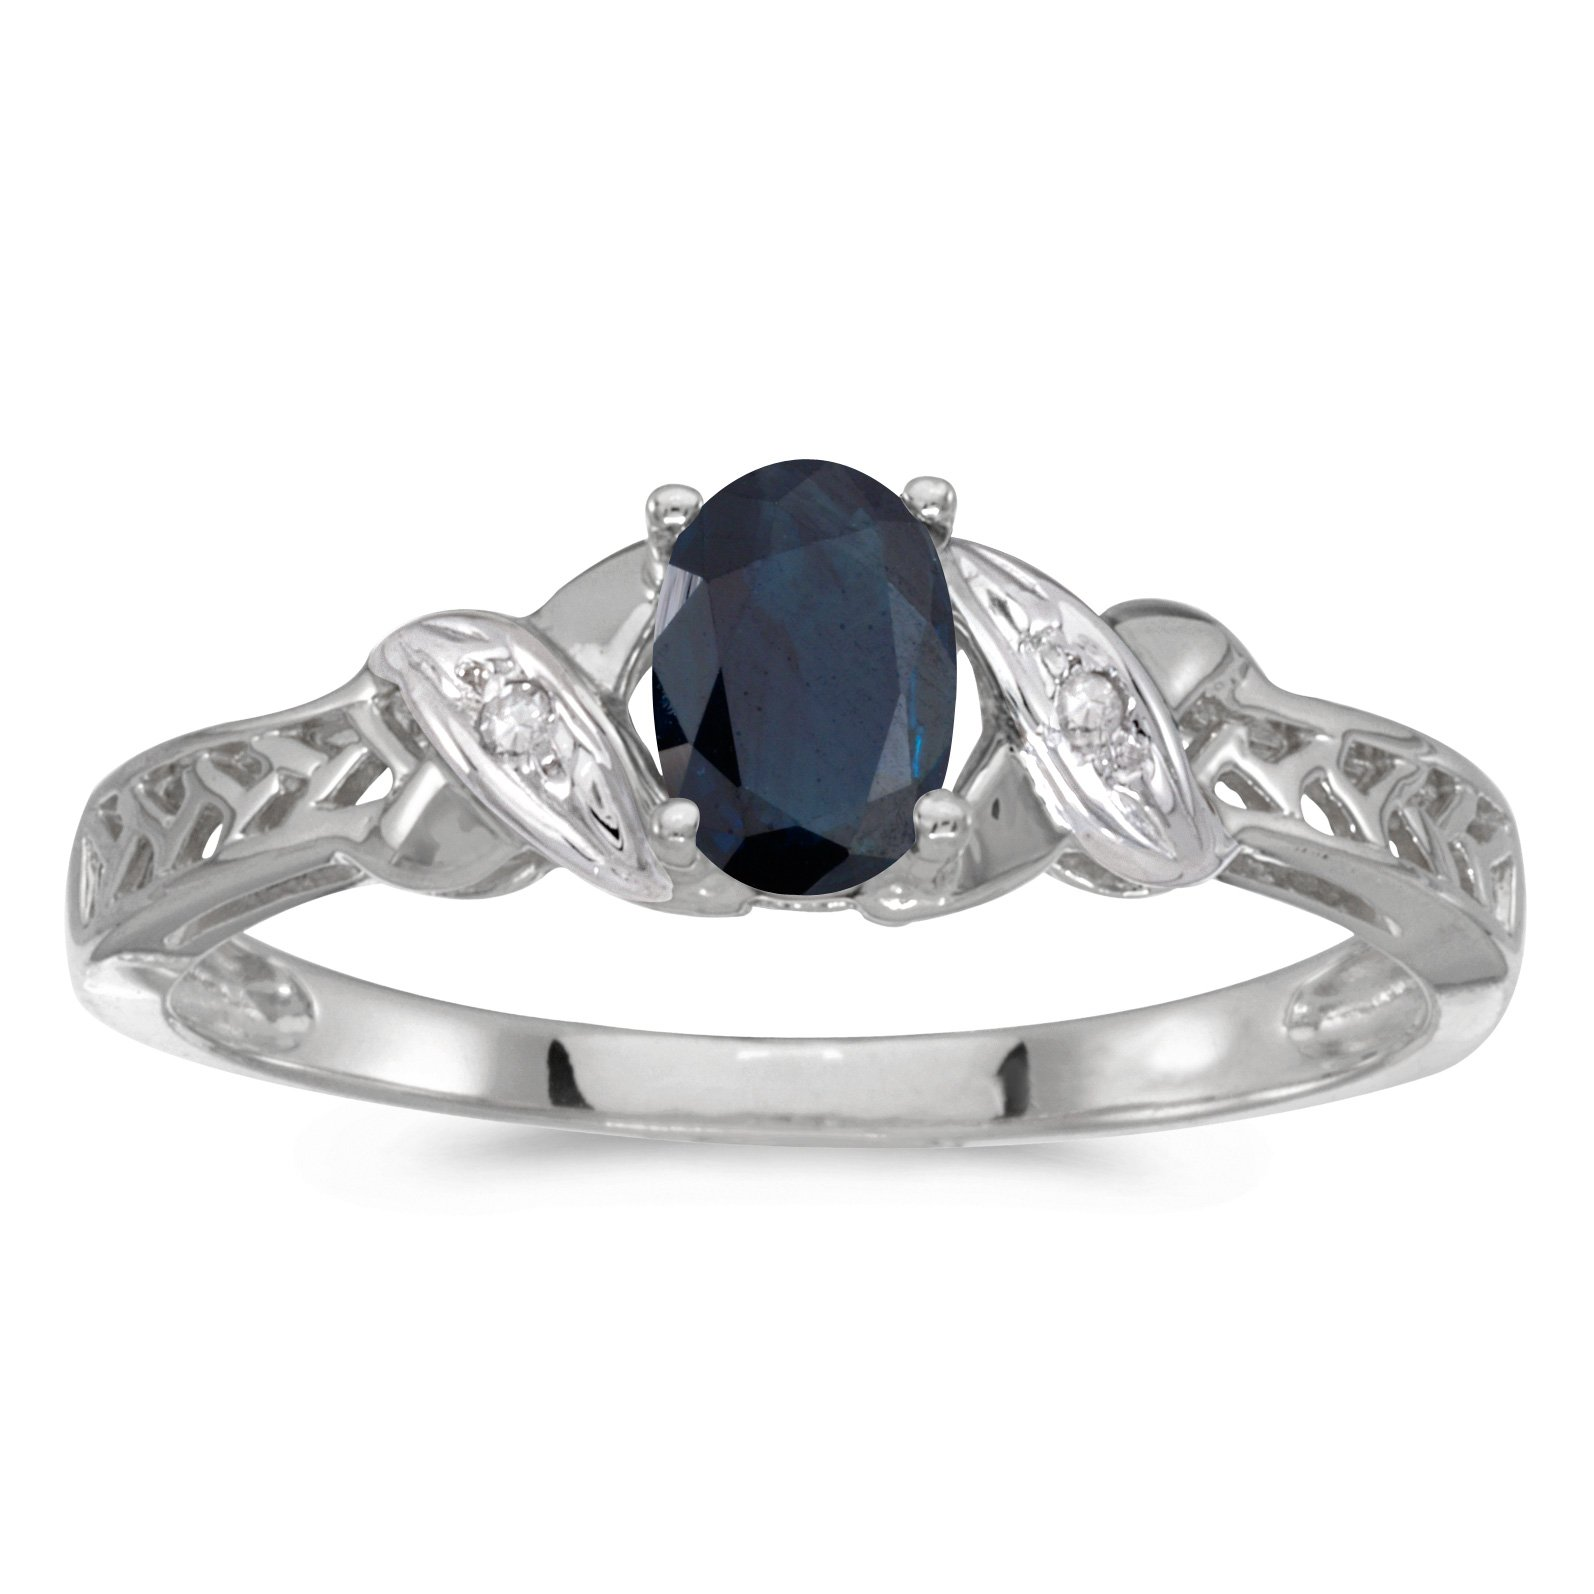 0.40 Carat ctw 14k Gold Oval Blue Sapphire & Diamond Crossover Infinity Antique Promise Fashion Ring - White-gold, Size 11